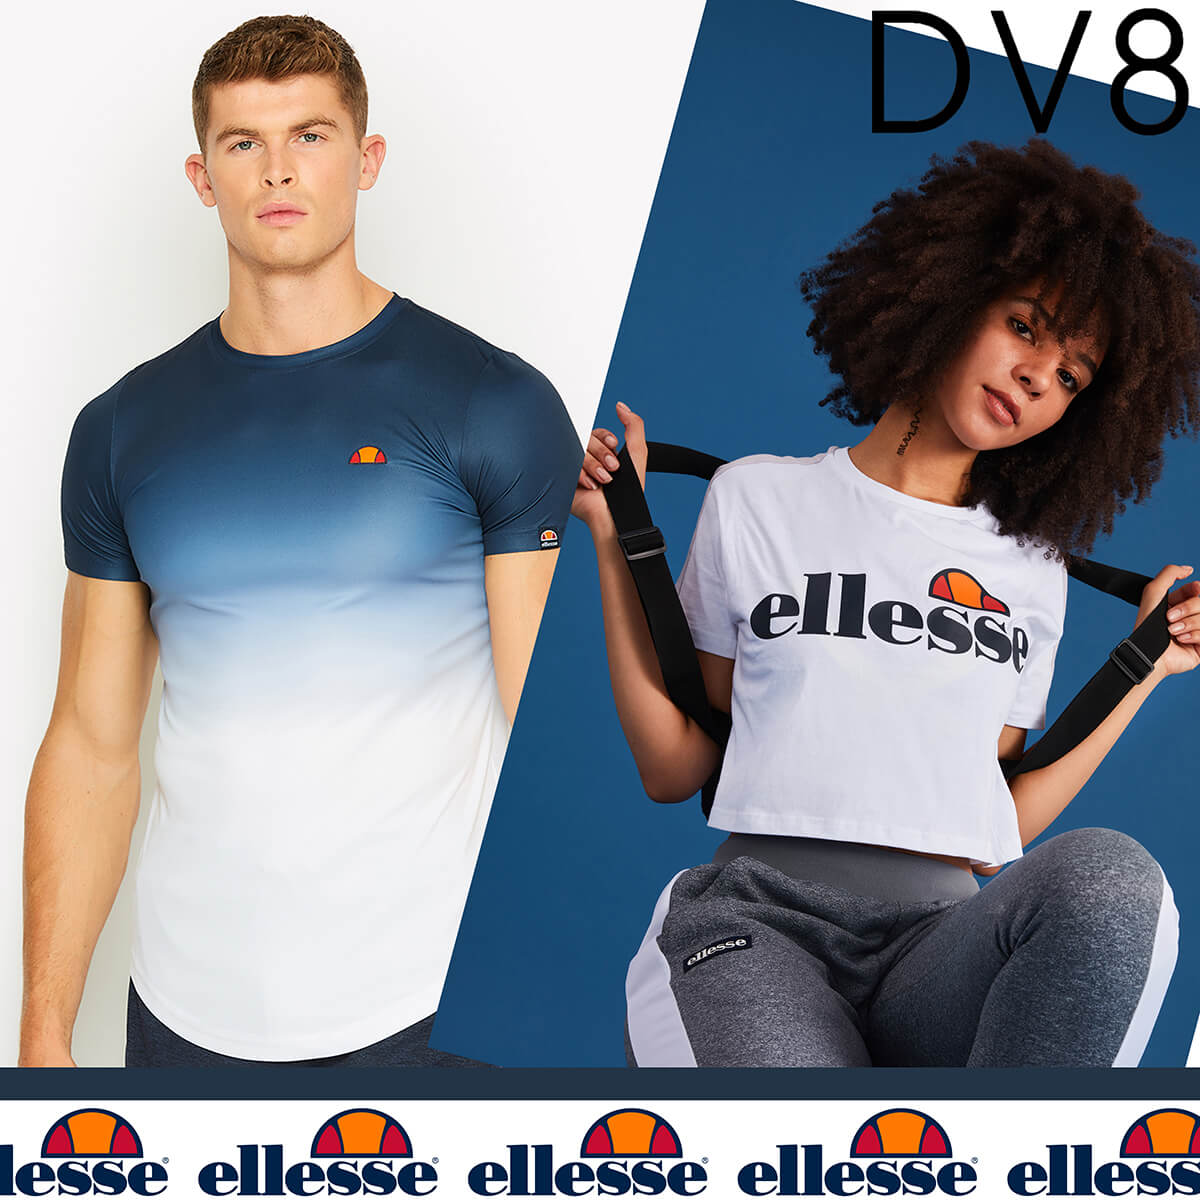 New Season ELLESSE available at DV8 in Marshes Shopping Centre